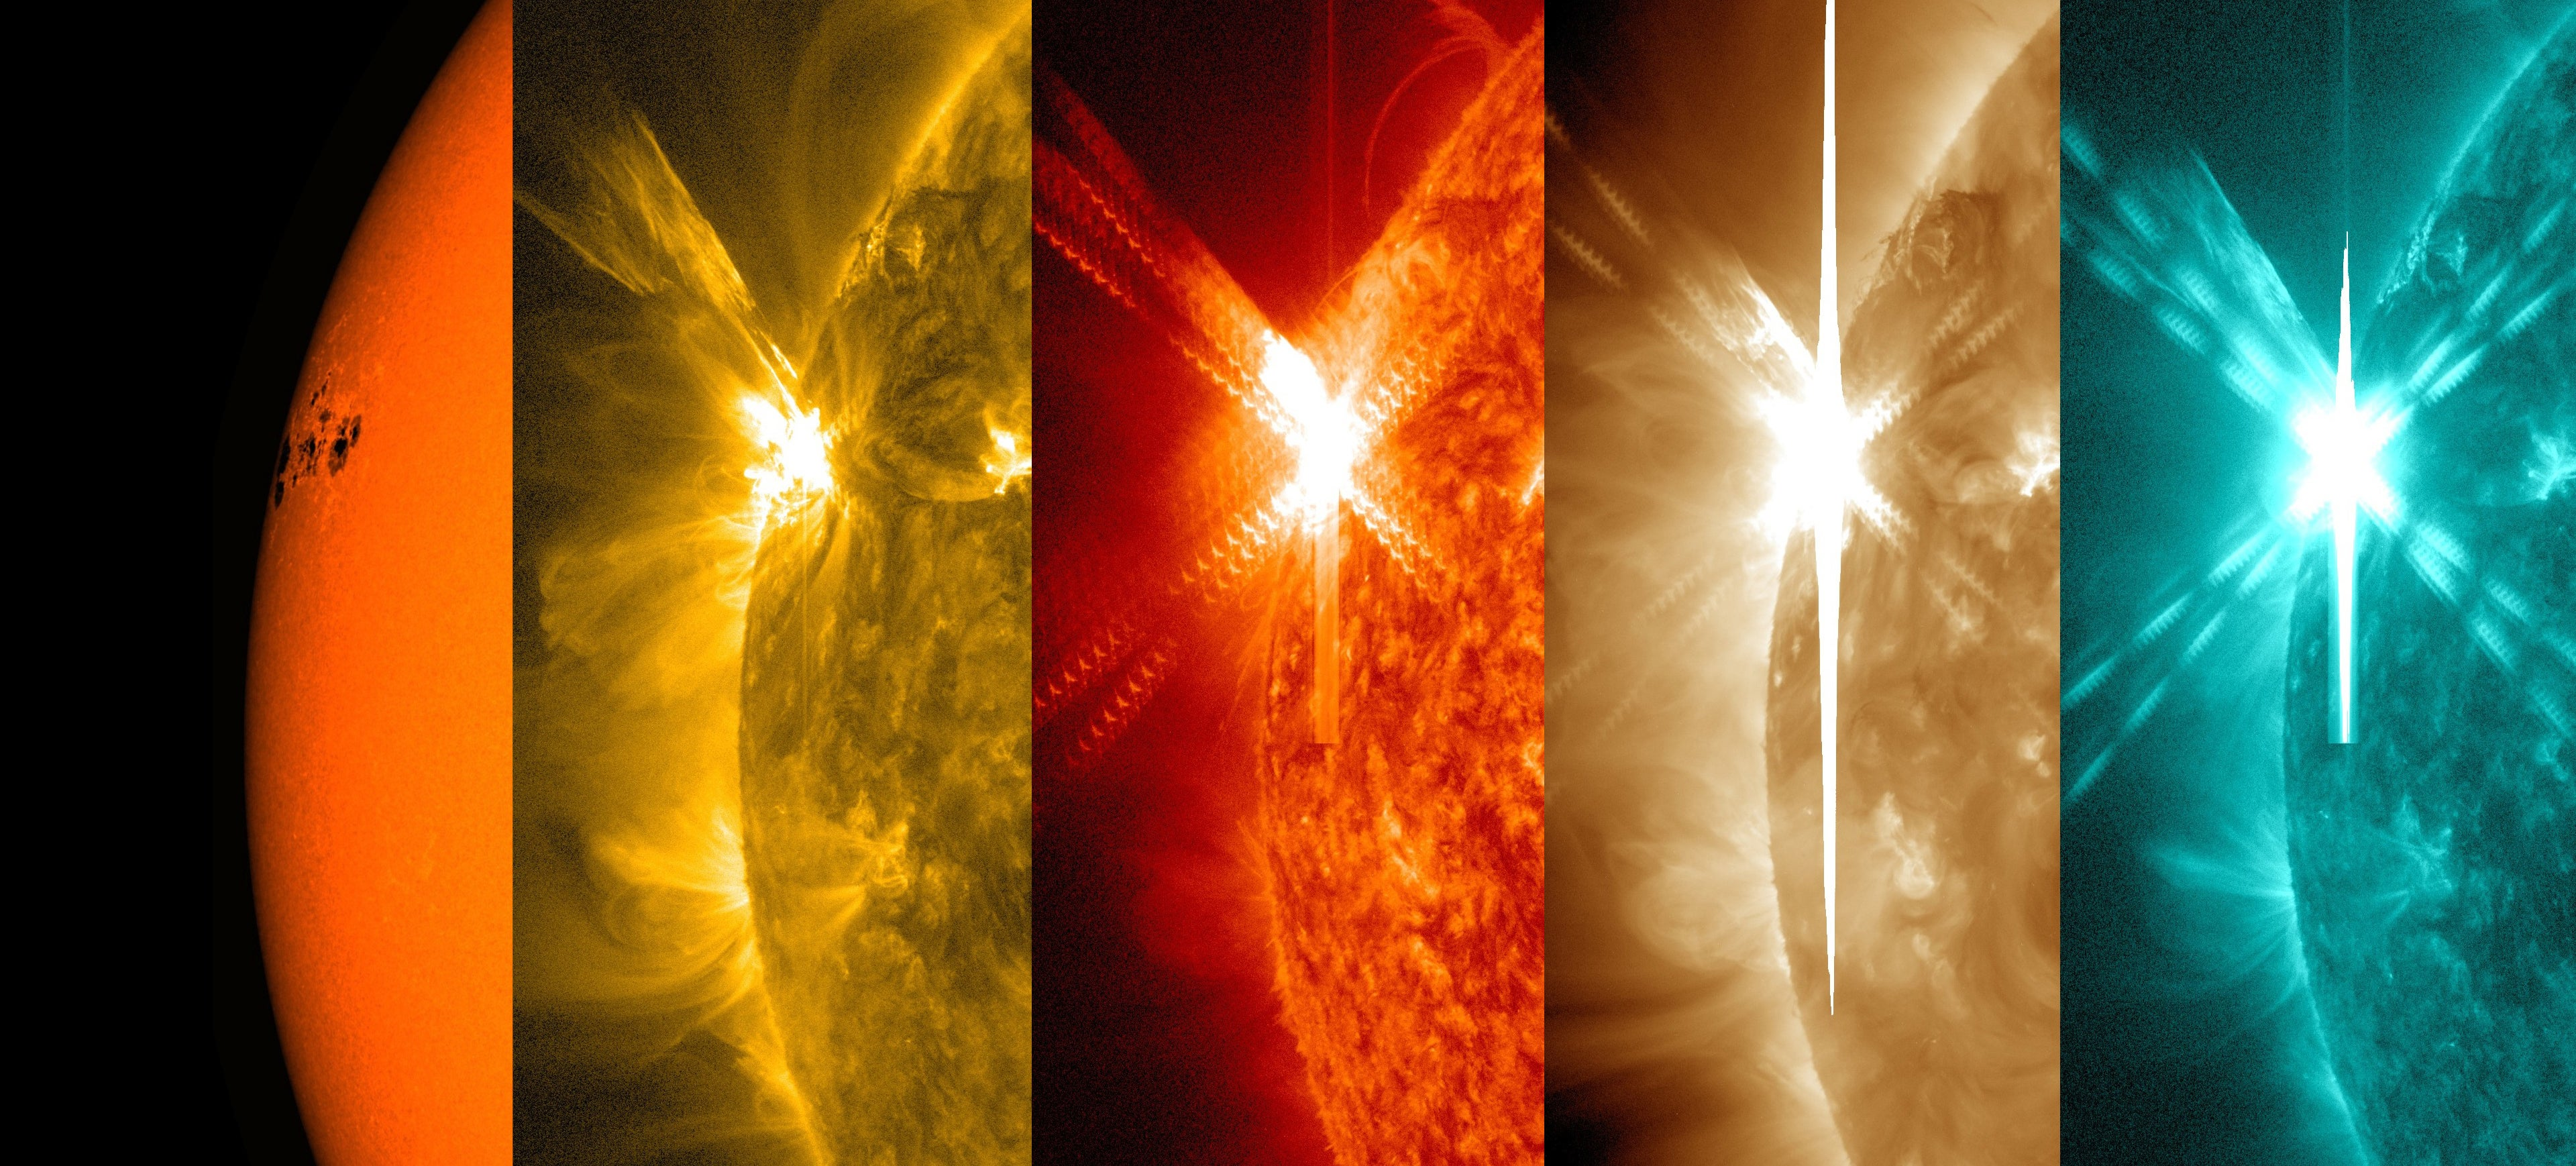 The Sun Celebrated Cinco de Mayo With This Beautiful Solar Flare